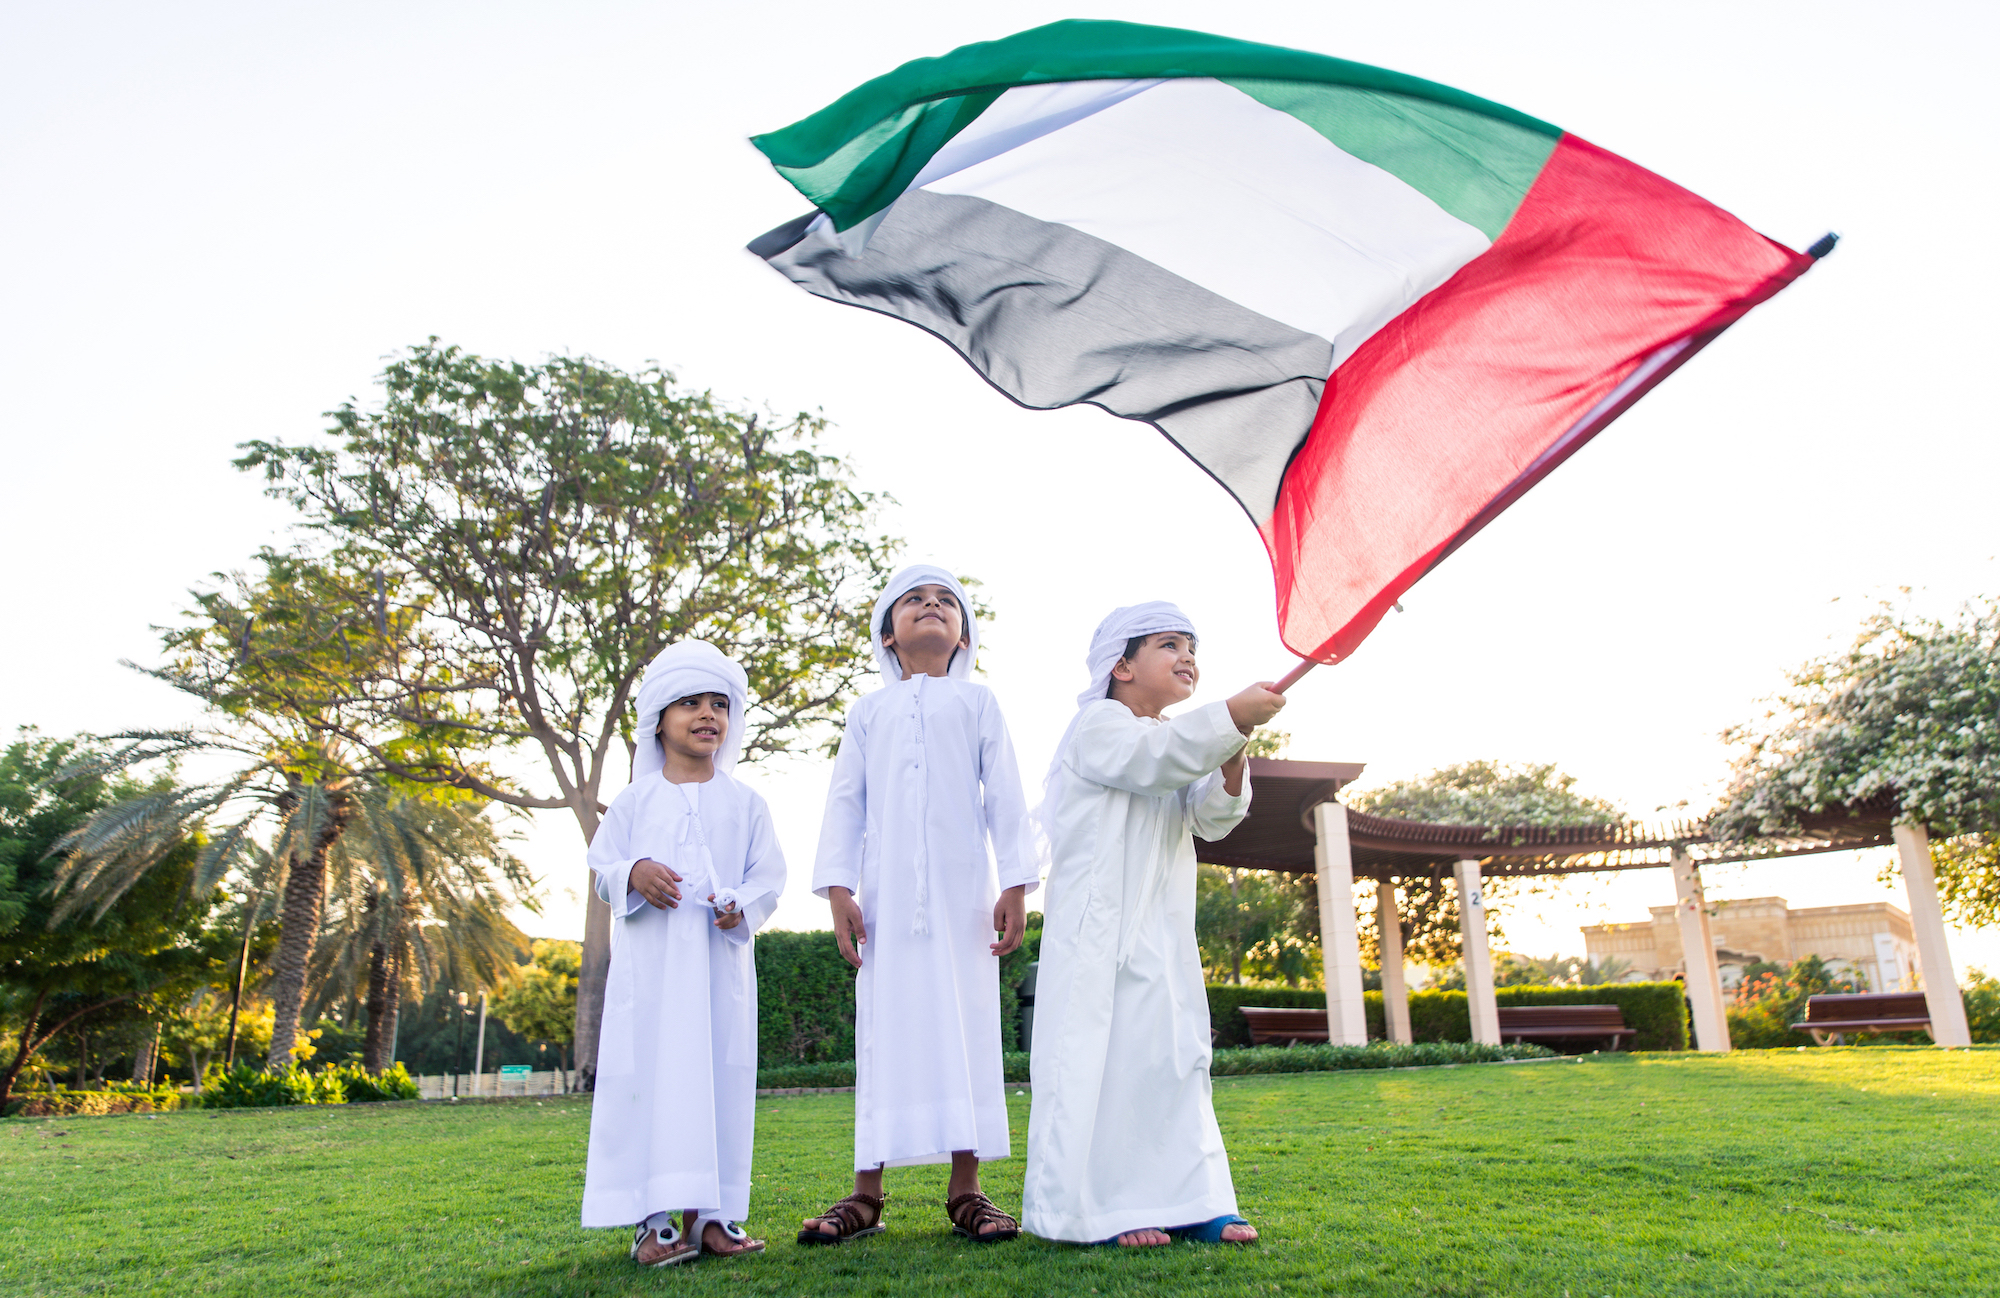 Sheikh Zayed death anniversary commemorated with Zayed Humanitarian Day